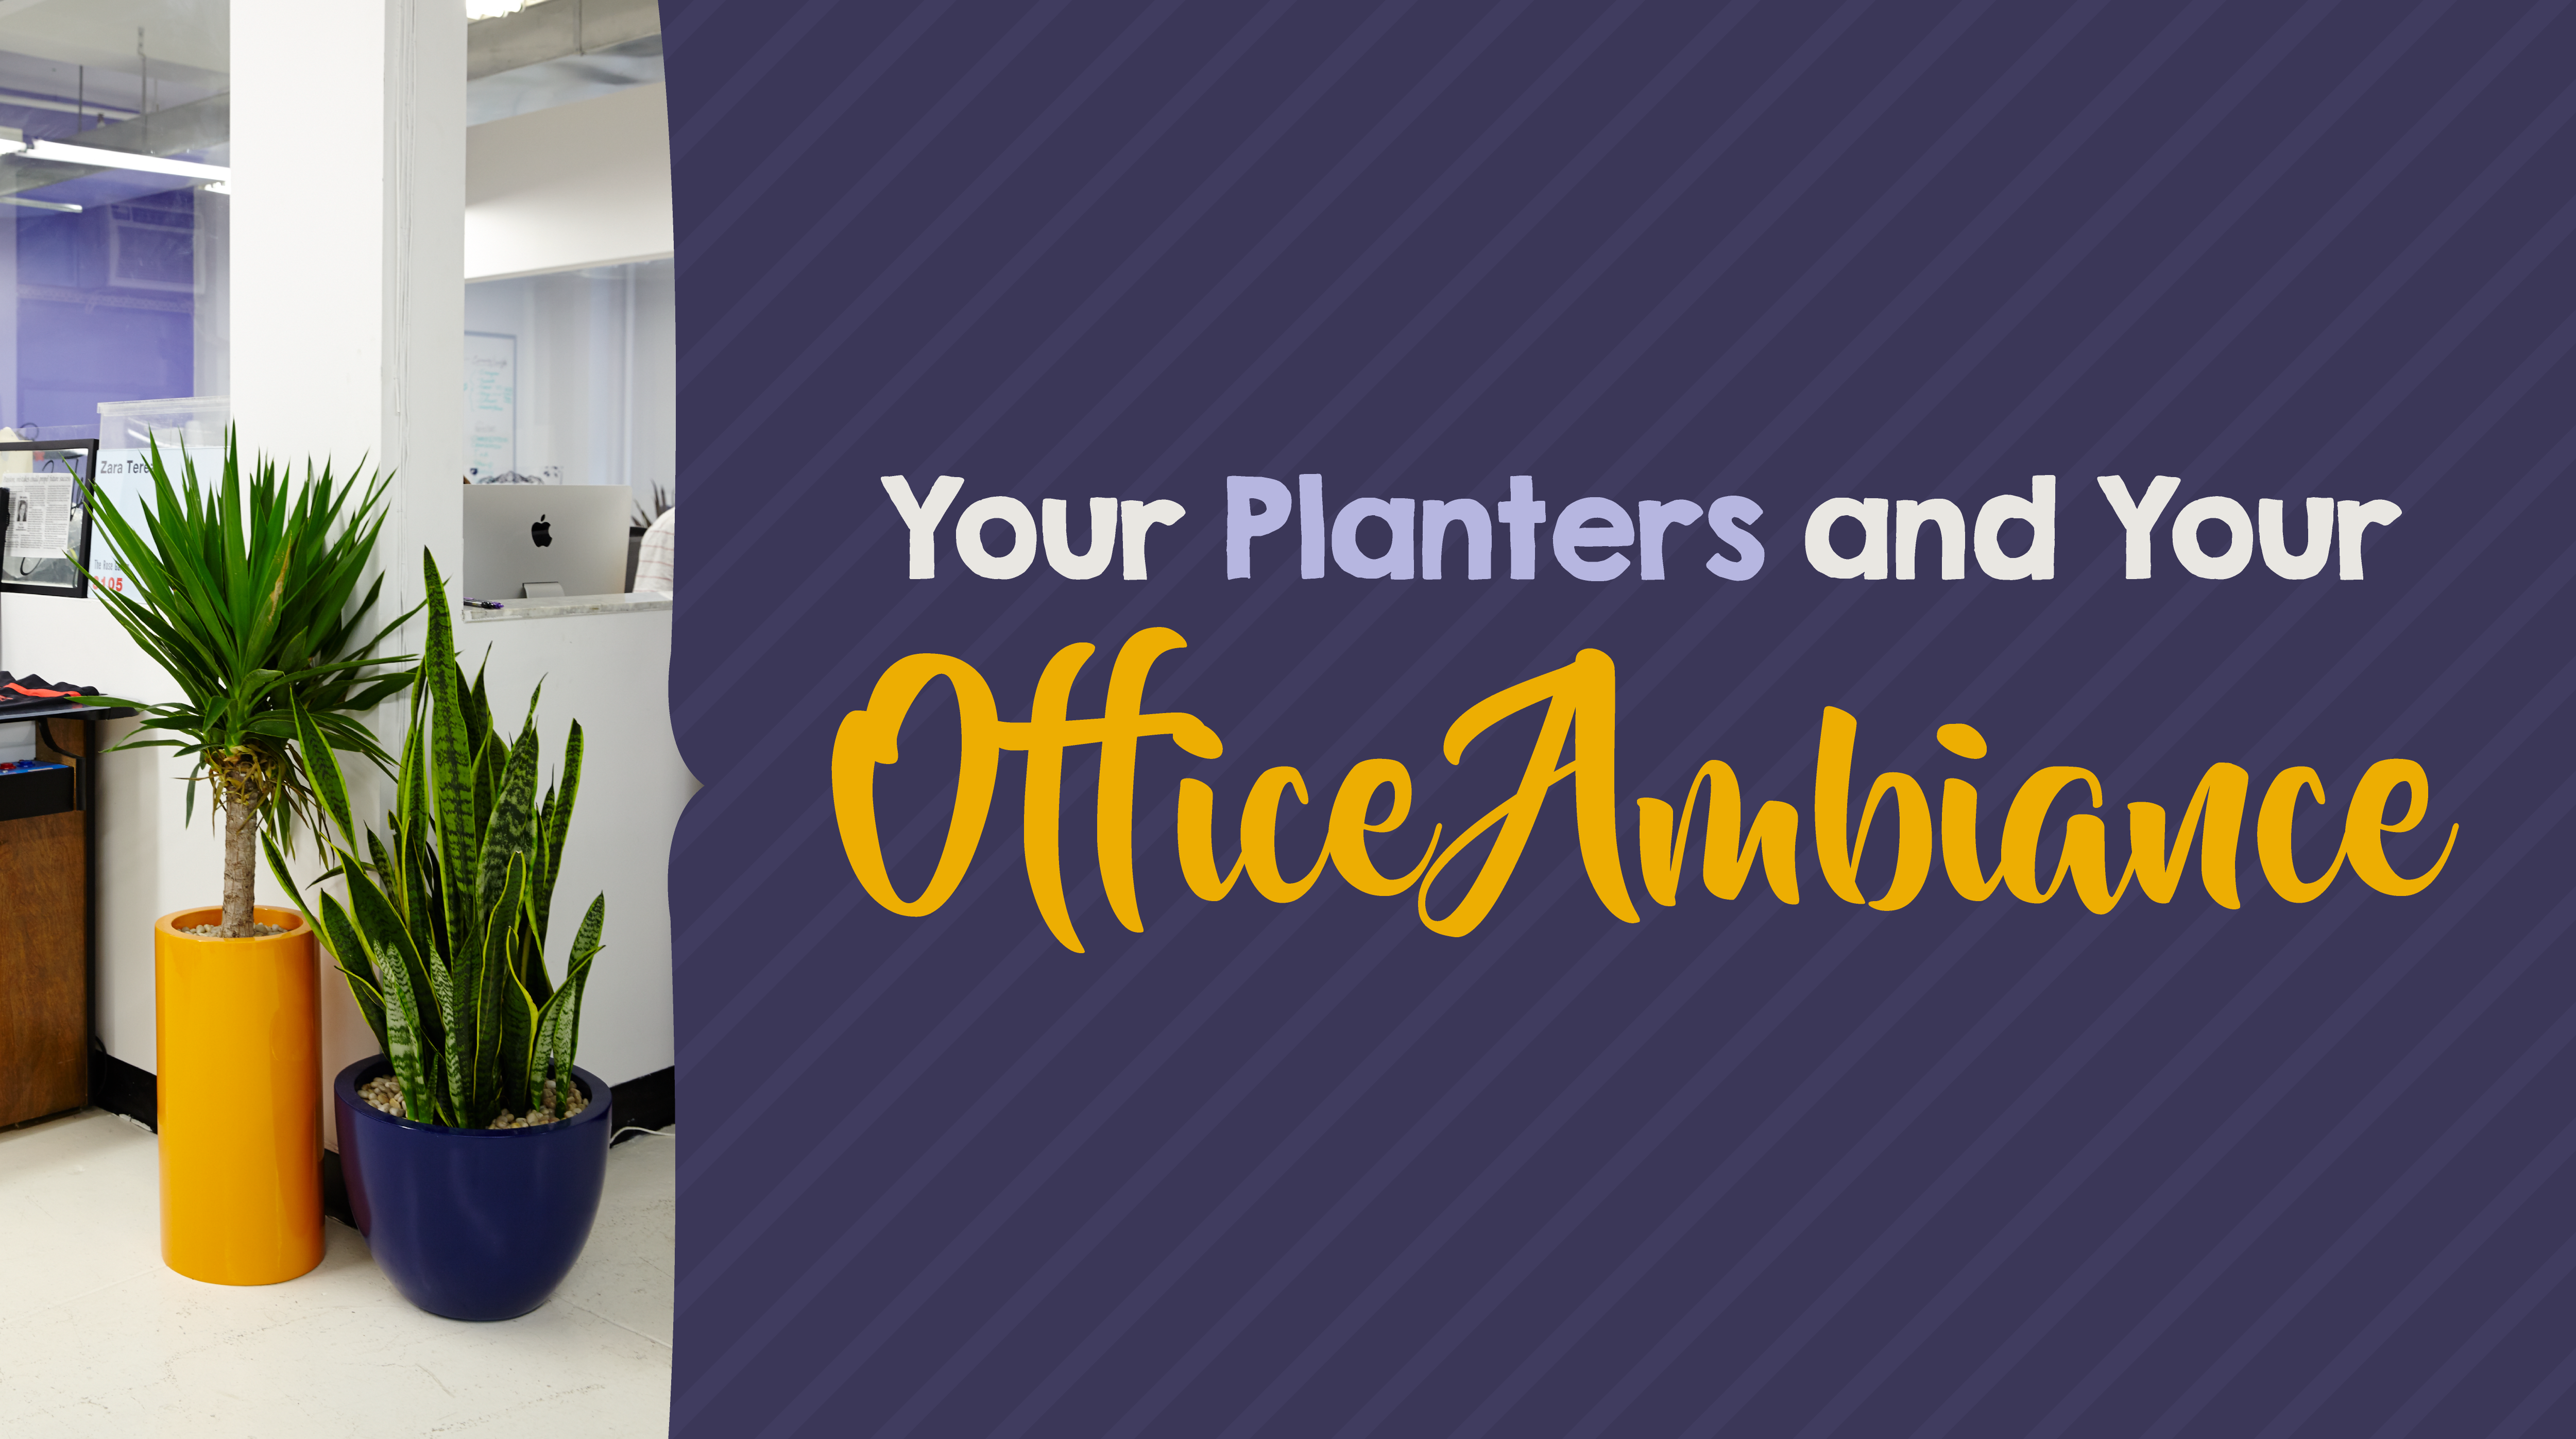 Planters and Office Ambiance